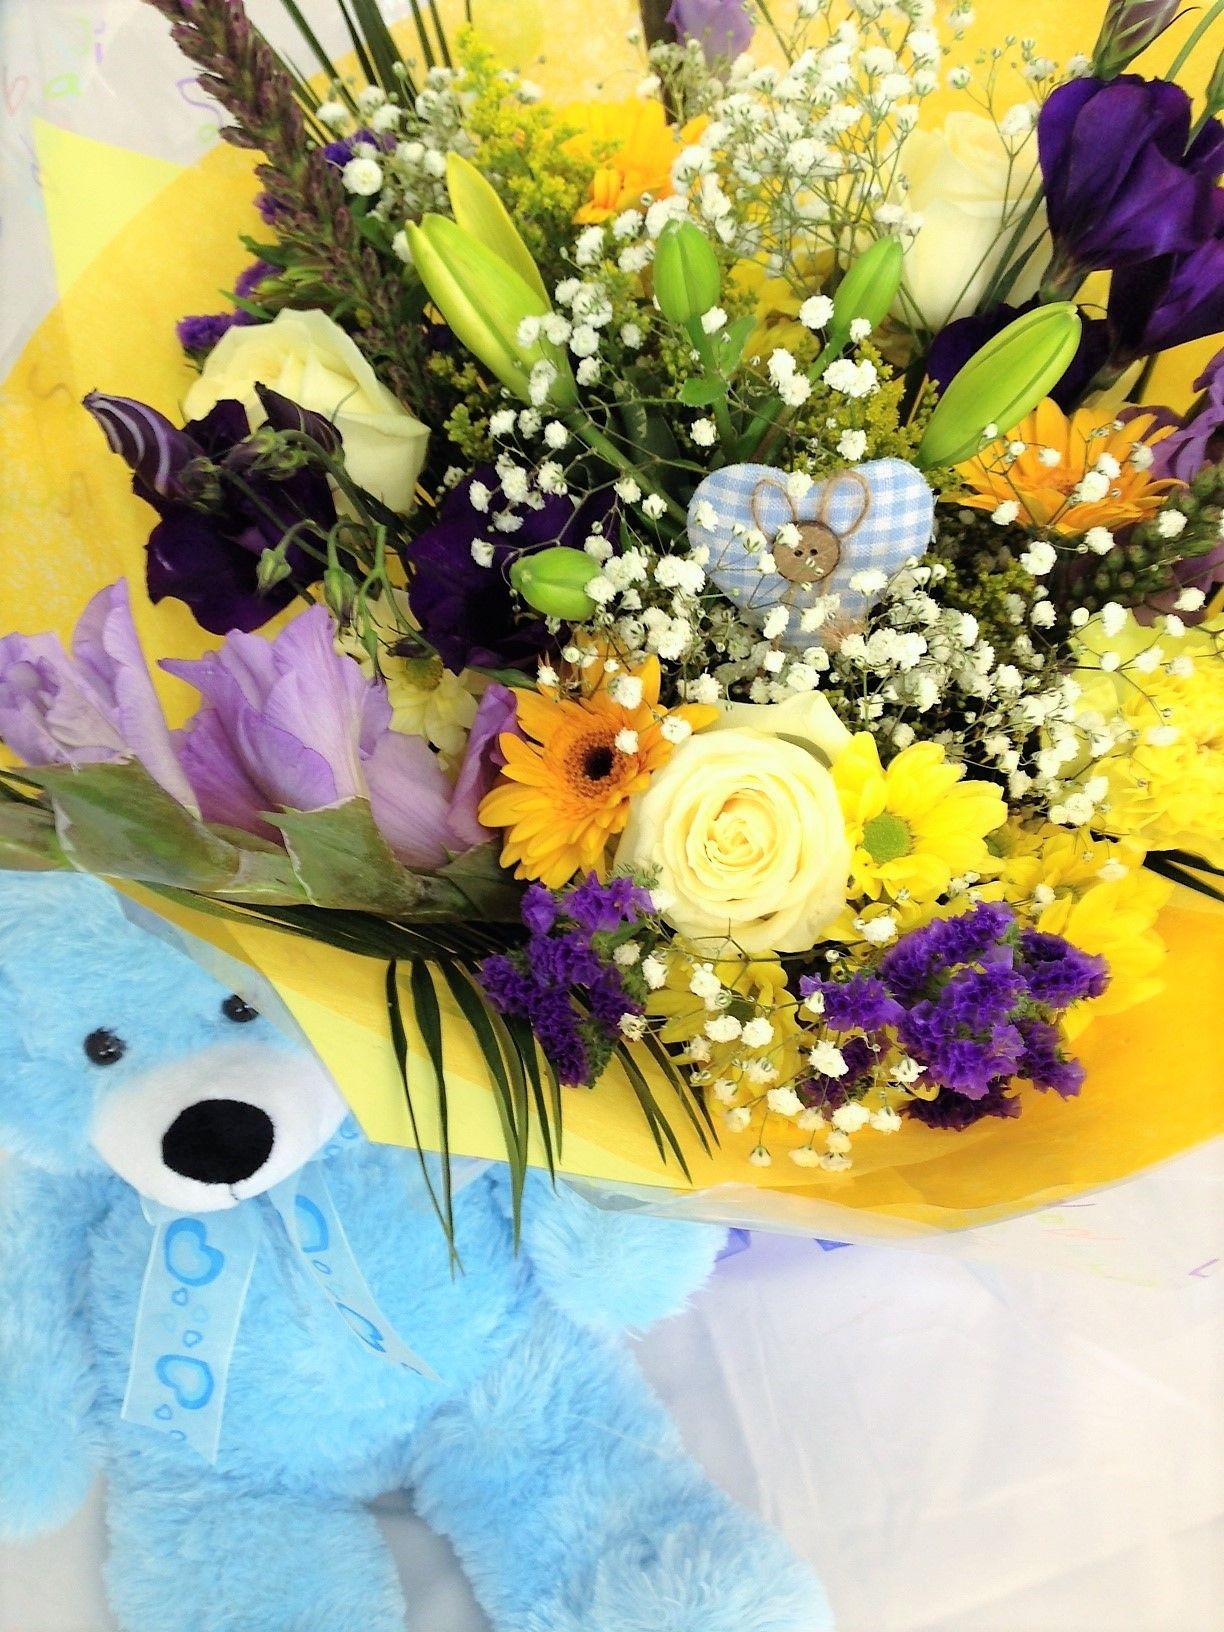 Our Beautiful Bliss Flowers & Gift Set that went out to